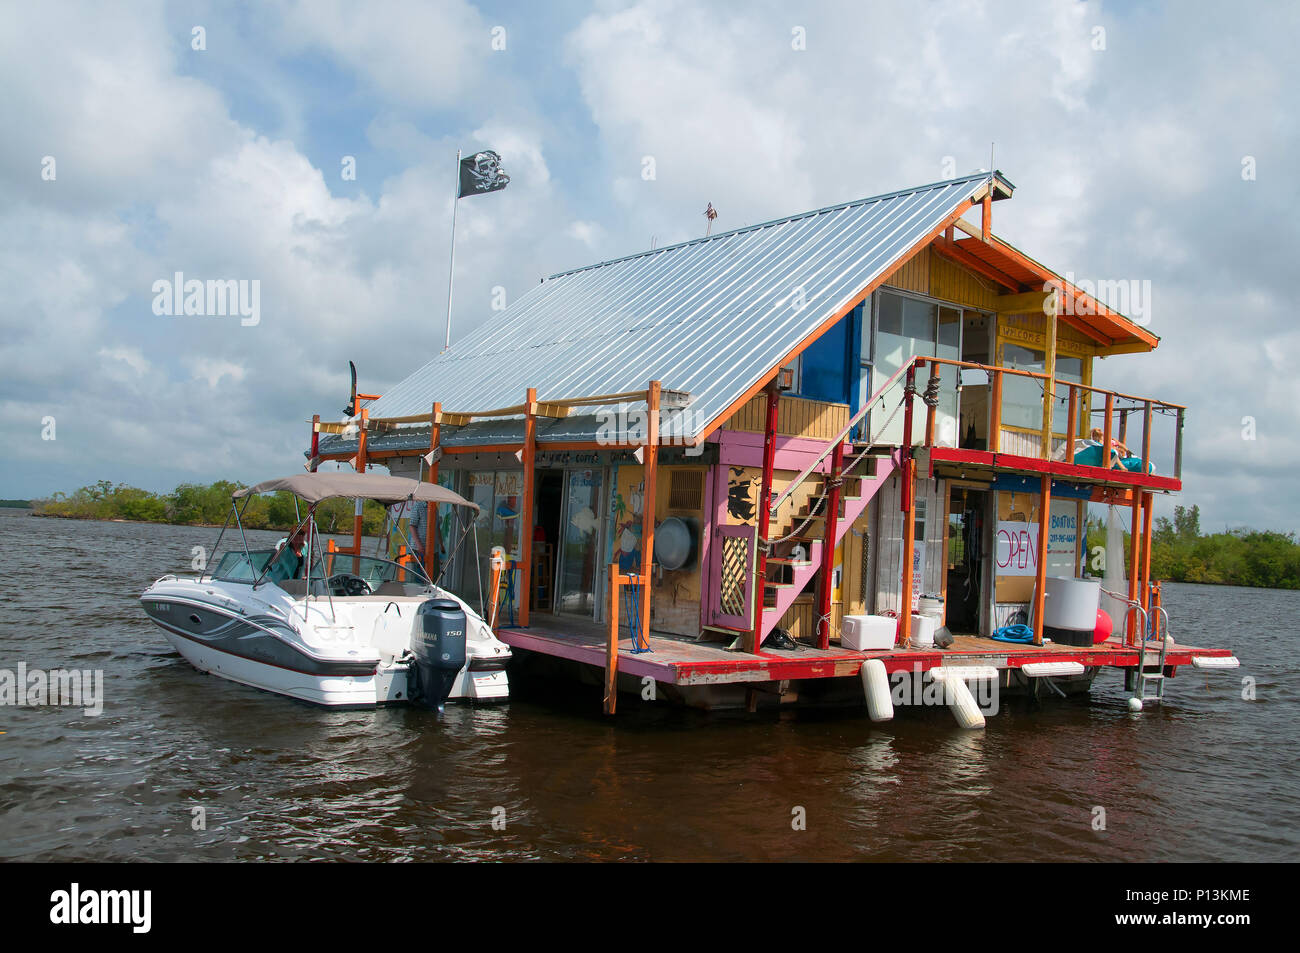 A floating bait shack is conveniently moored in the inland waters of Cape Coral. - Stock Image